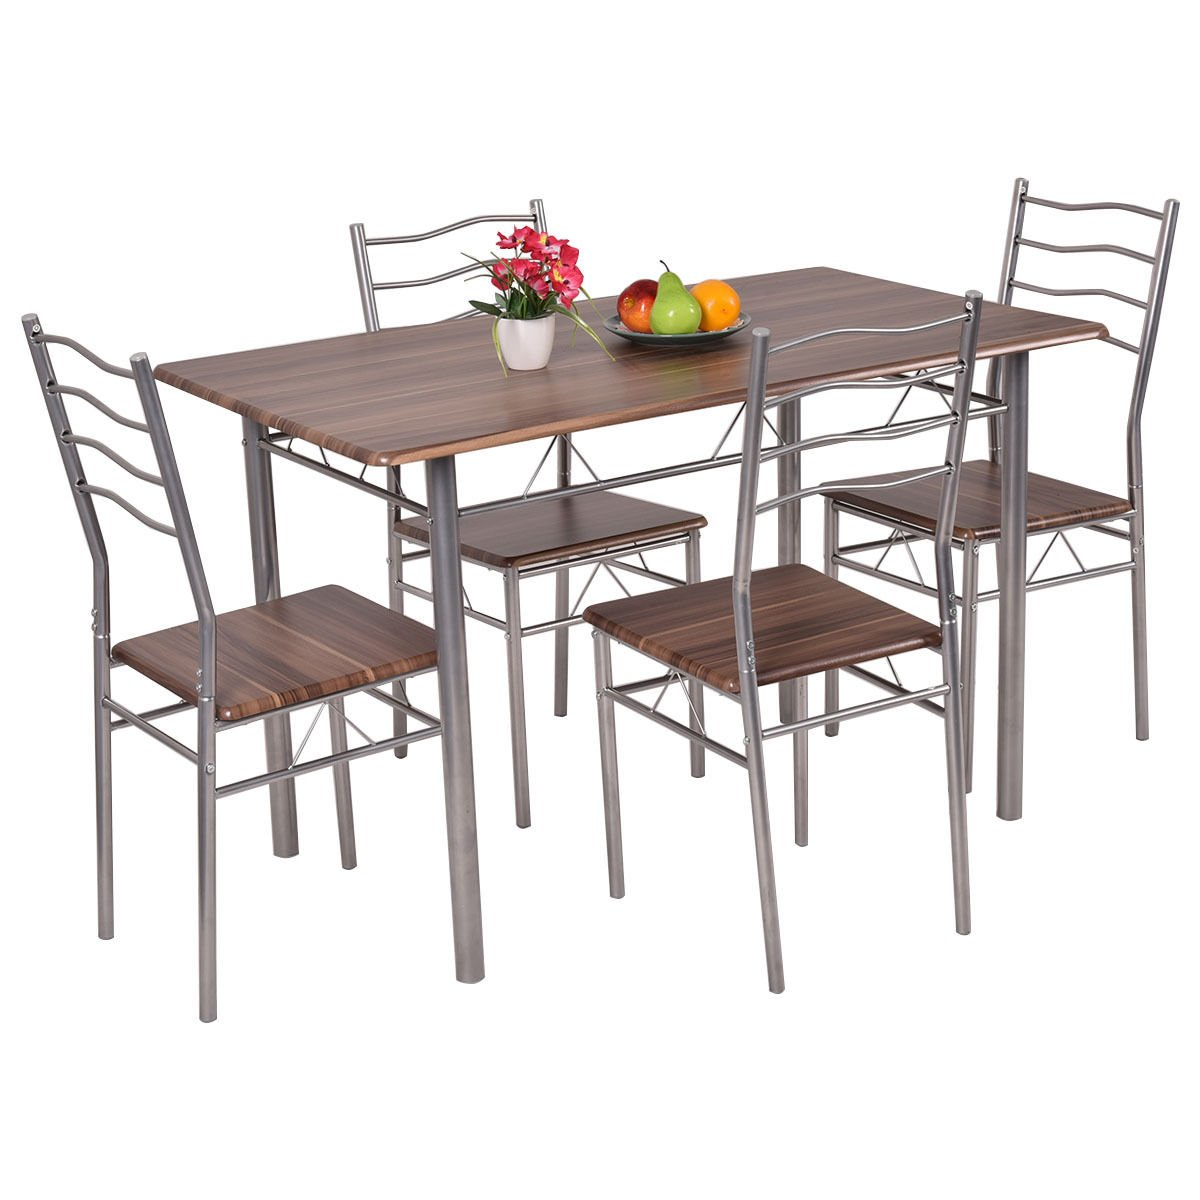 Amazon 5 Piece Dining Set Wood Metal Table and 4 Chairs